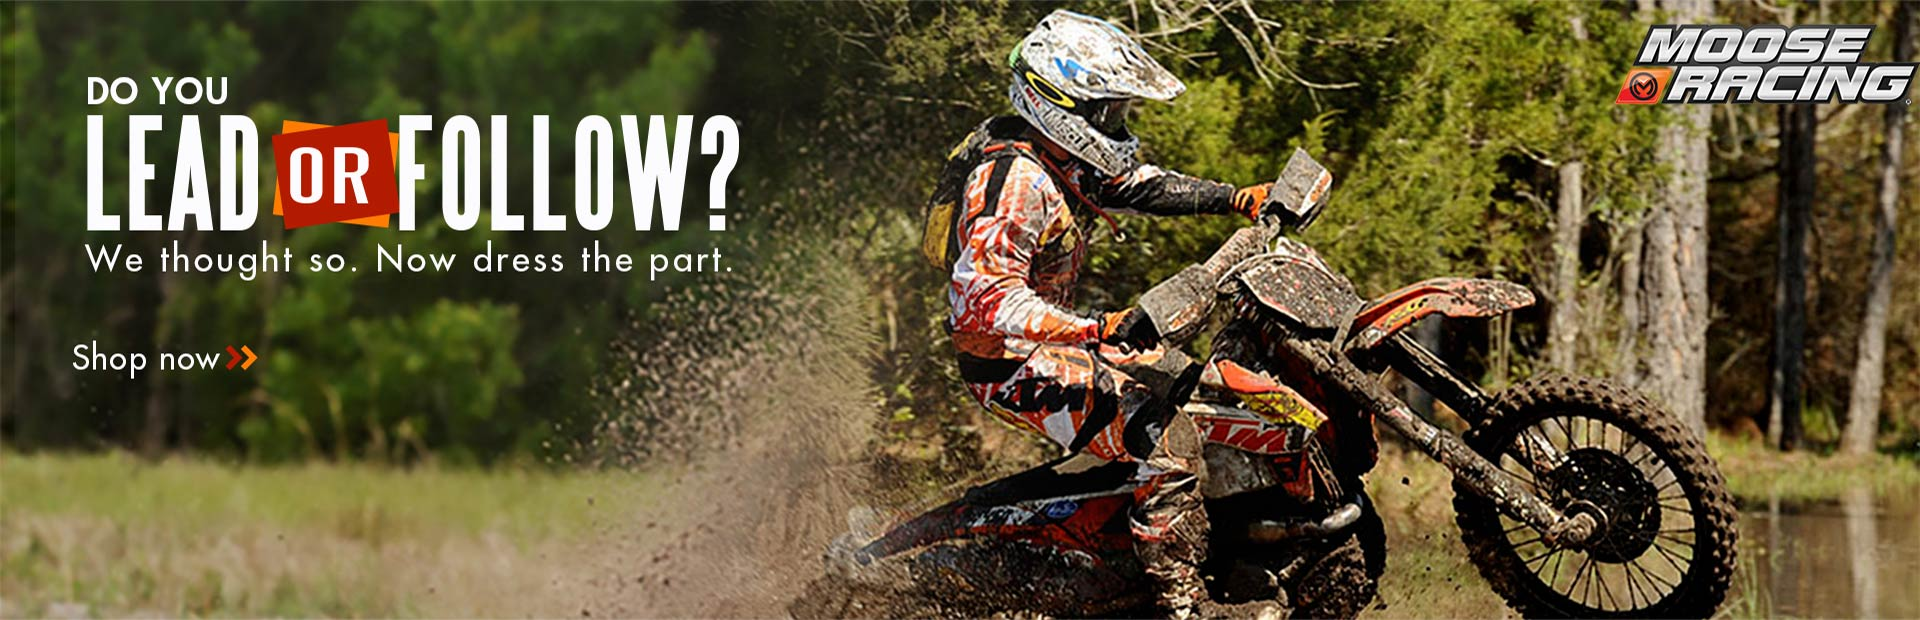 Click here to view Moose Racing gear online.